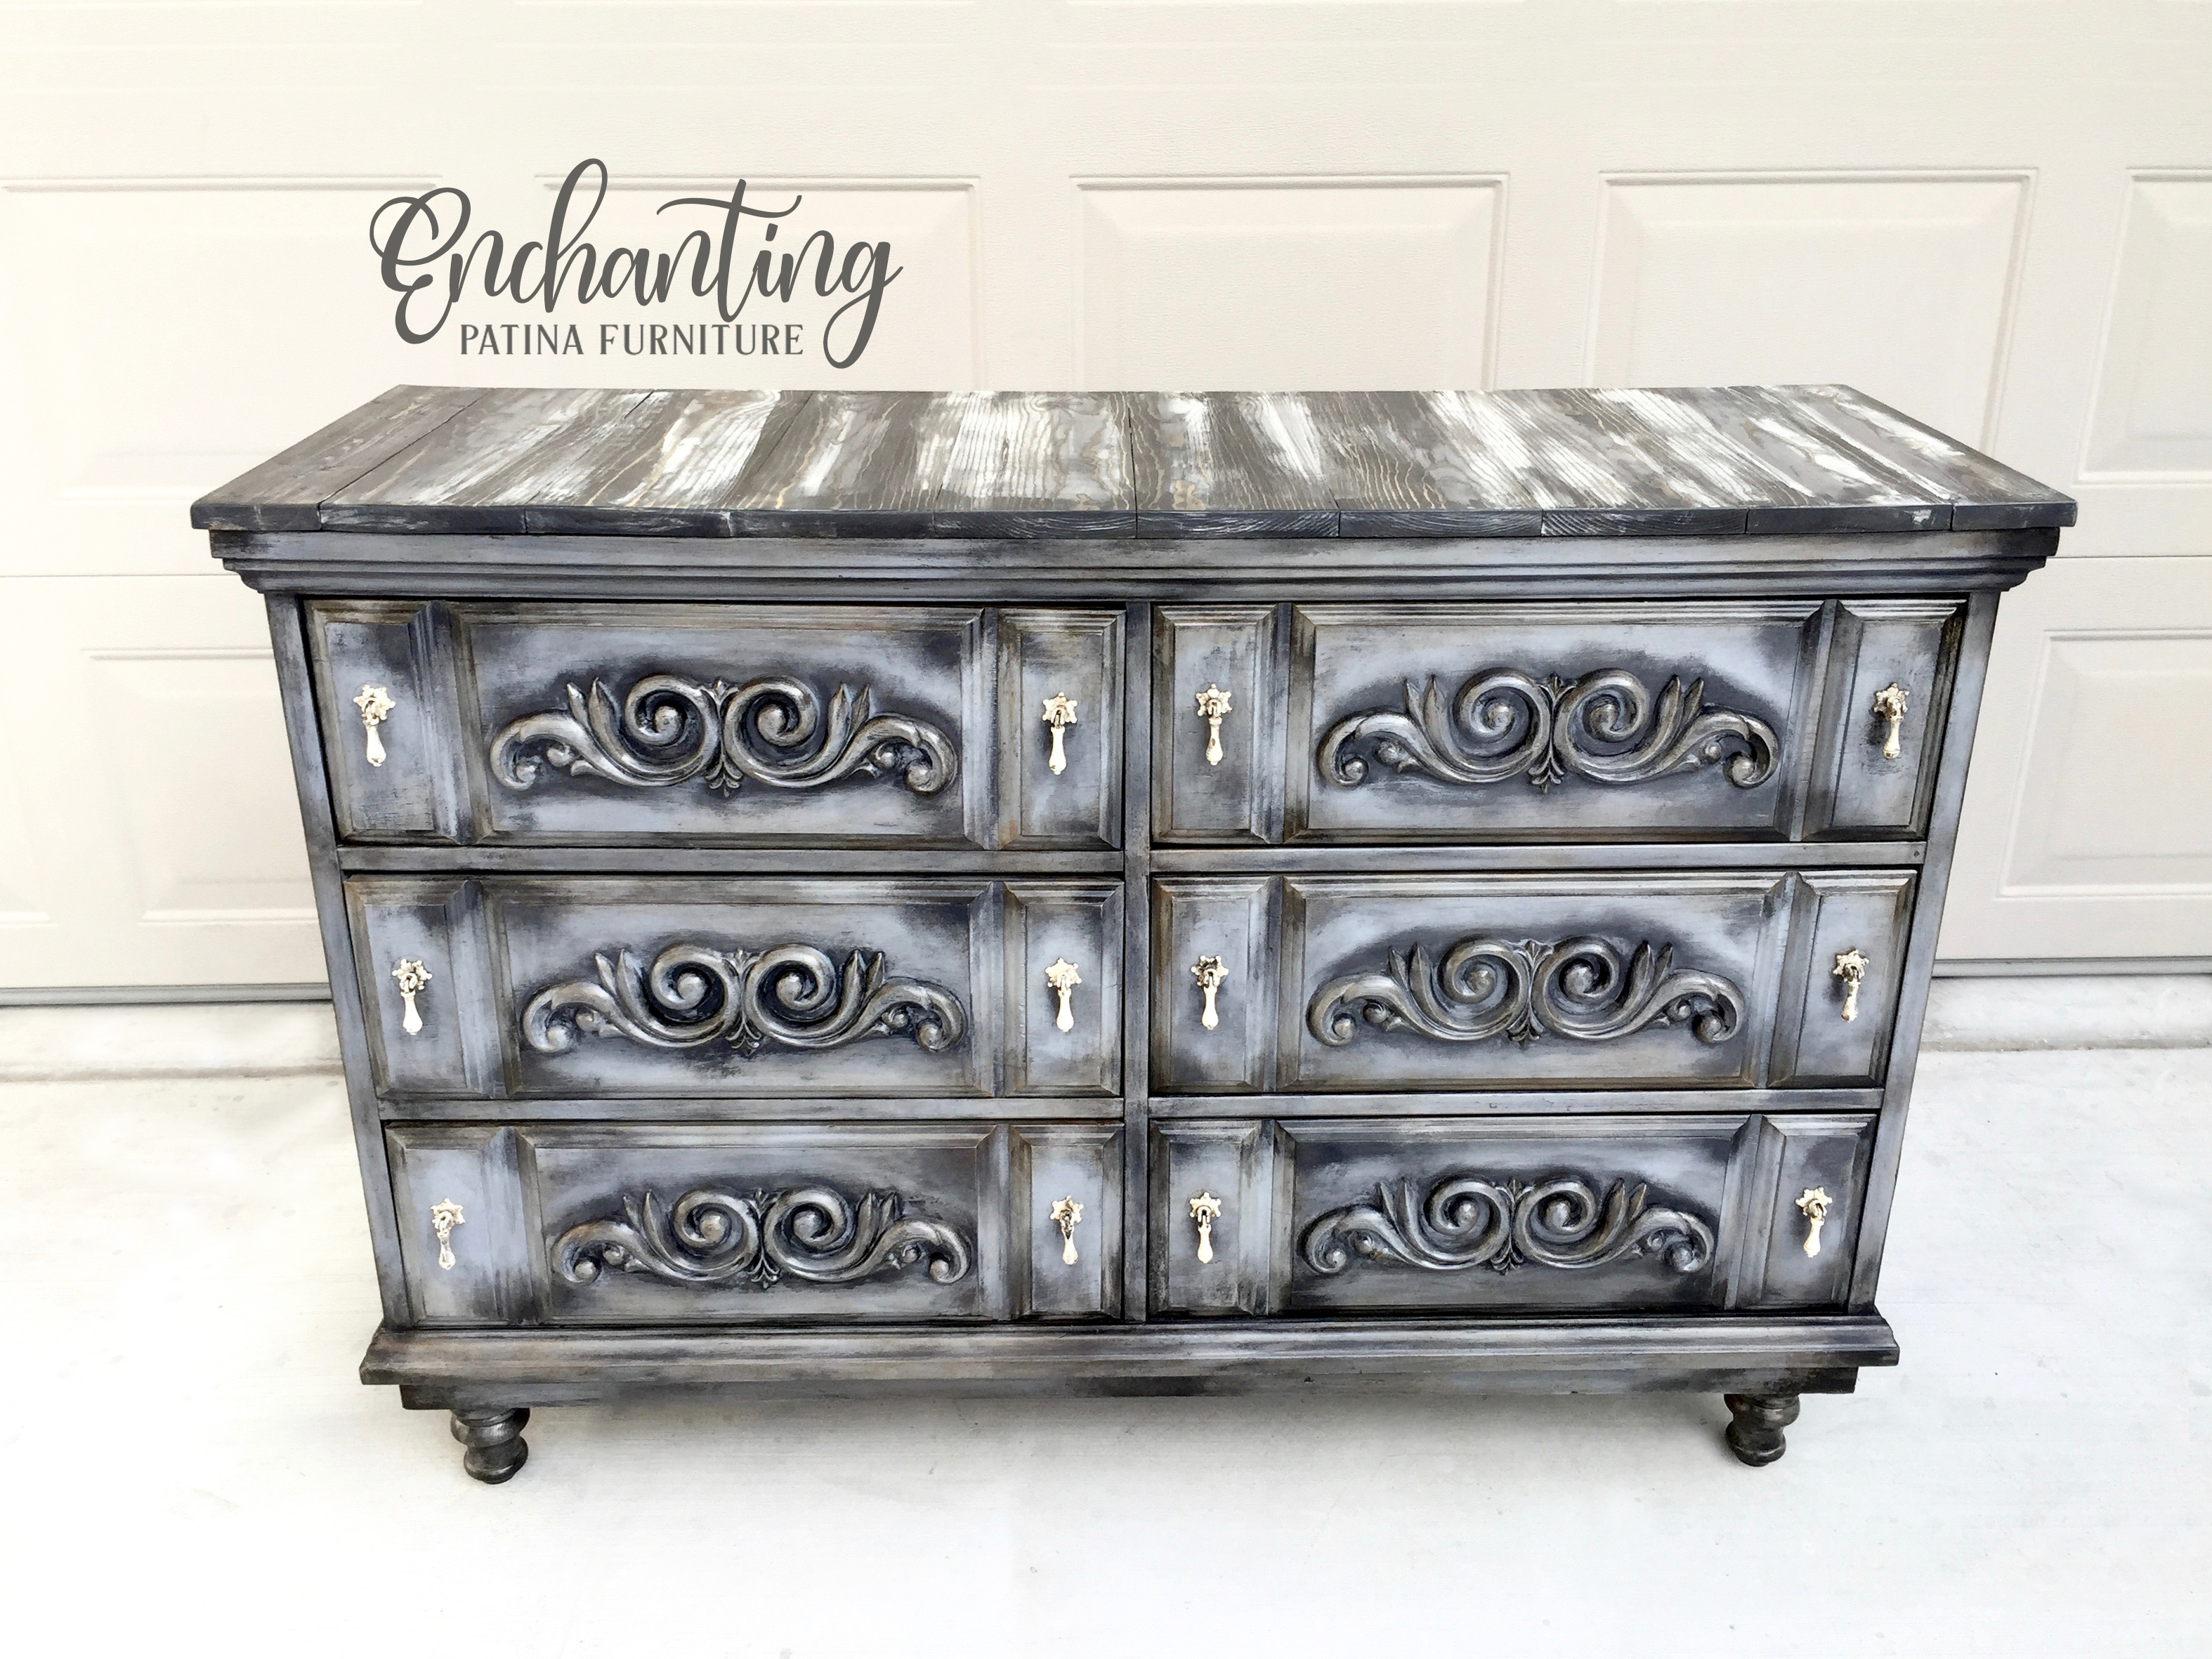 Black and White Furniture Ideas - Enchanting Patina